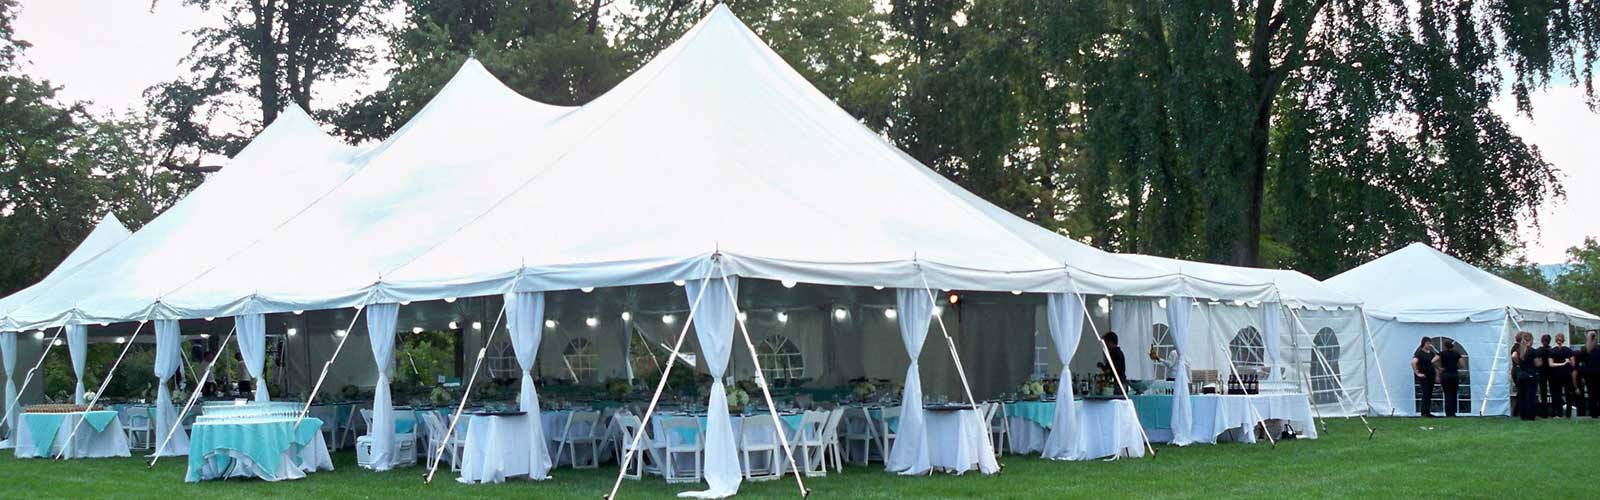 Party Rentals in Canton CT, the Farmington Valley, and Northwest Connecticut